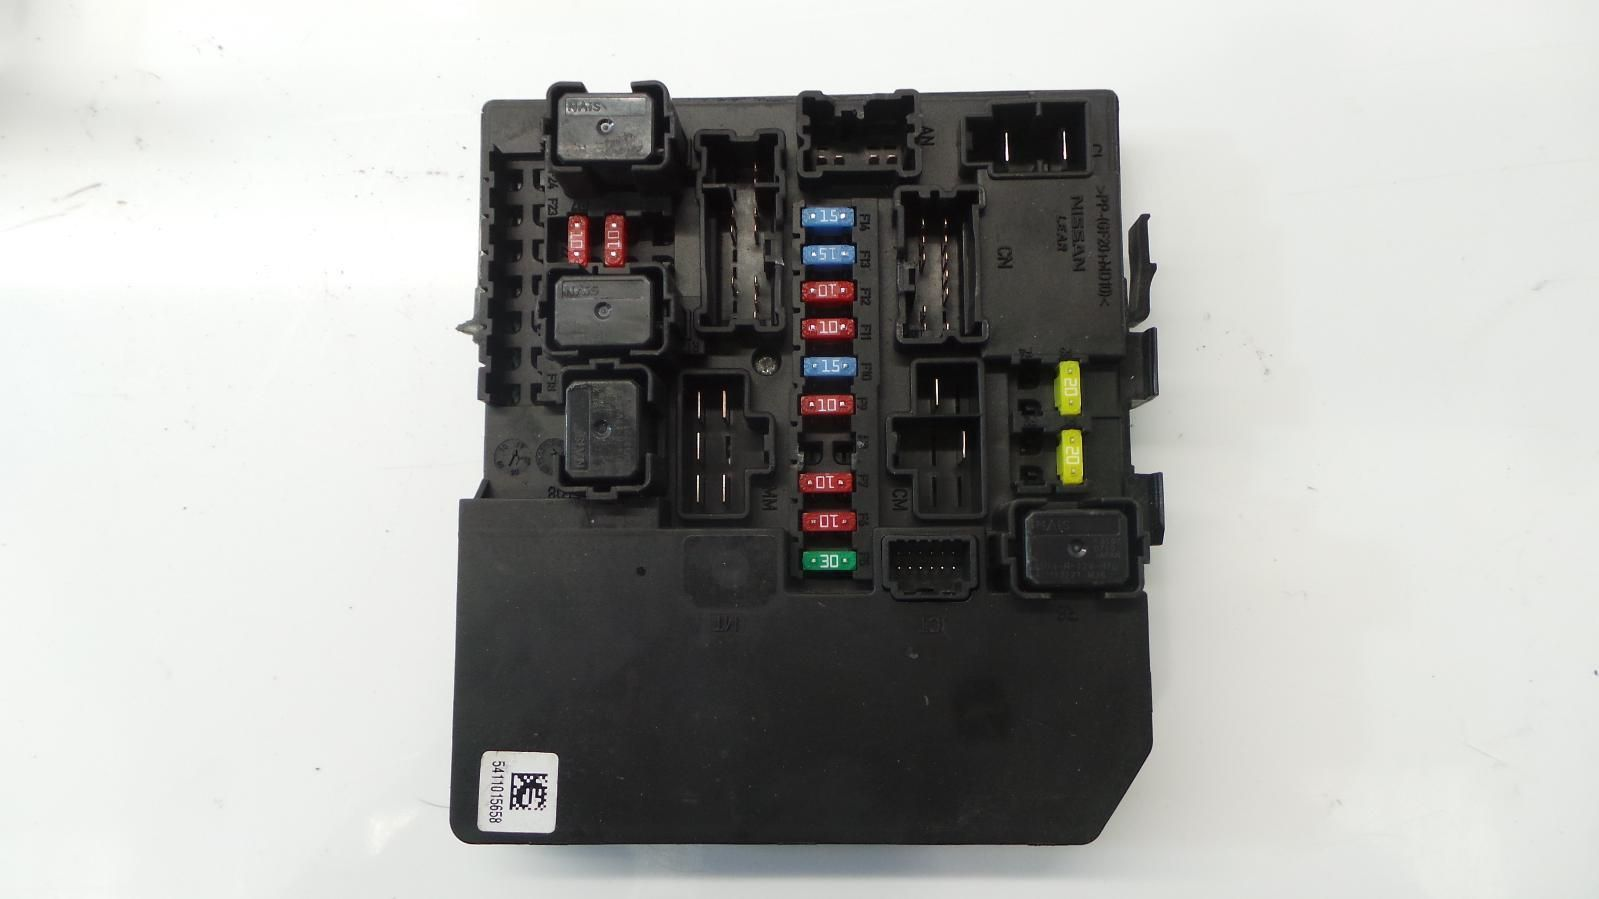 hight resolution of nissan nv200 1 5 diesel 2012 fuse box 284b7jx50a 284b7 jx50a rh renault spares co uk